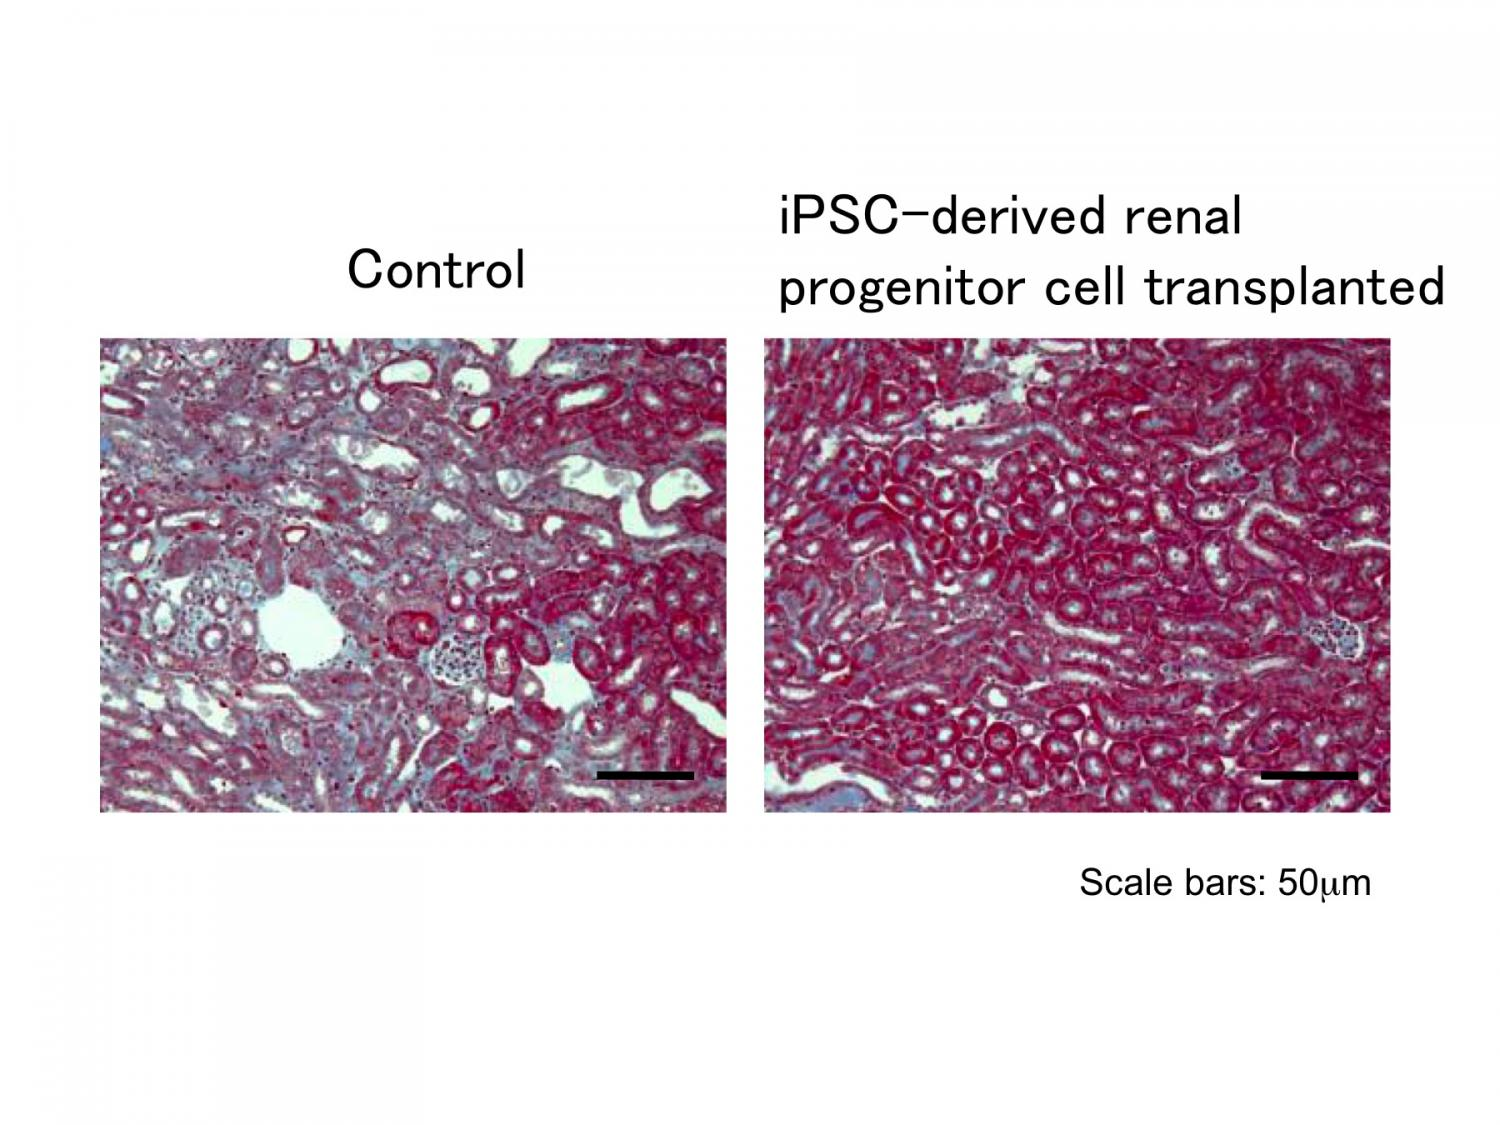 Induced Pluripotent Stem Cells Show Promise For Kidney Treatment